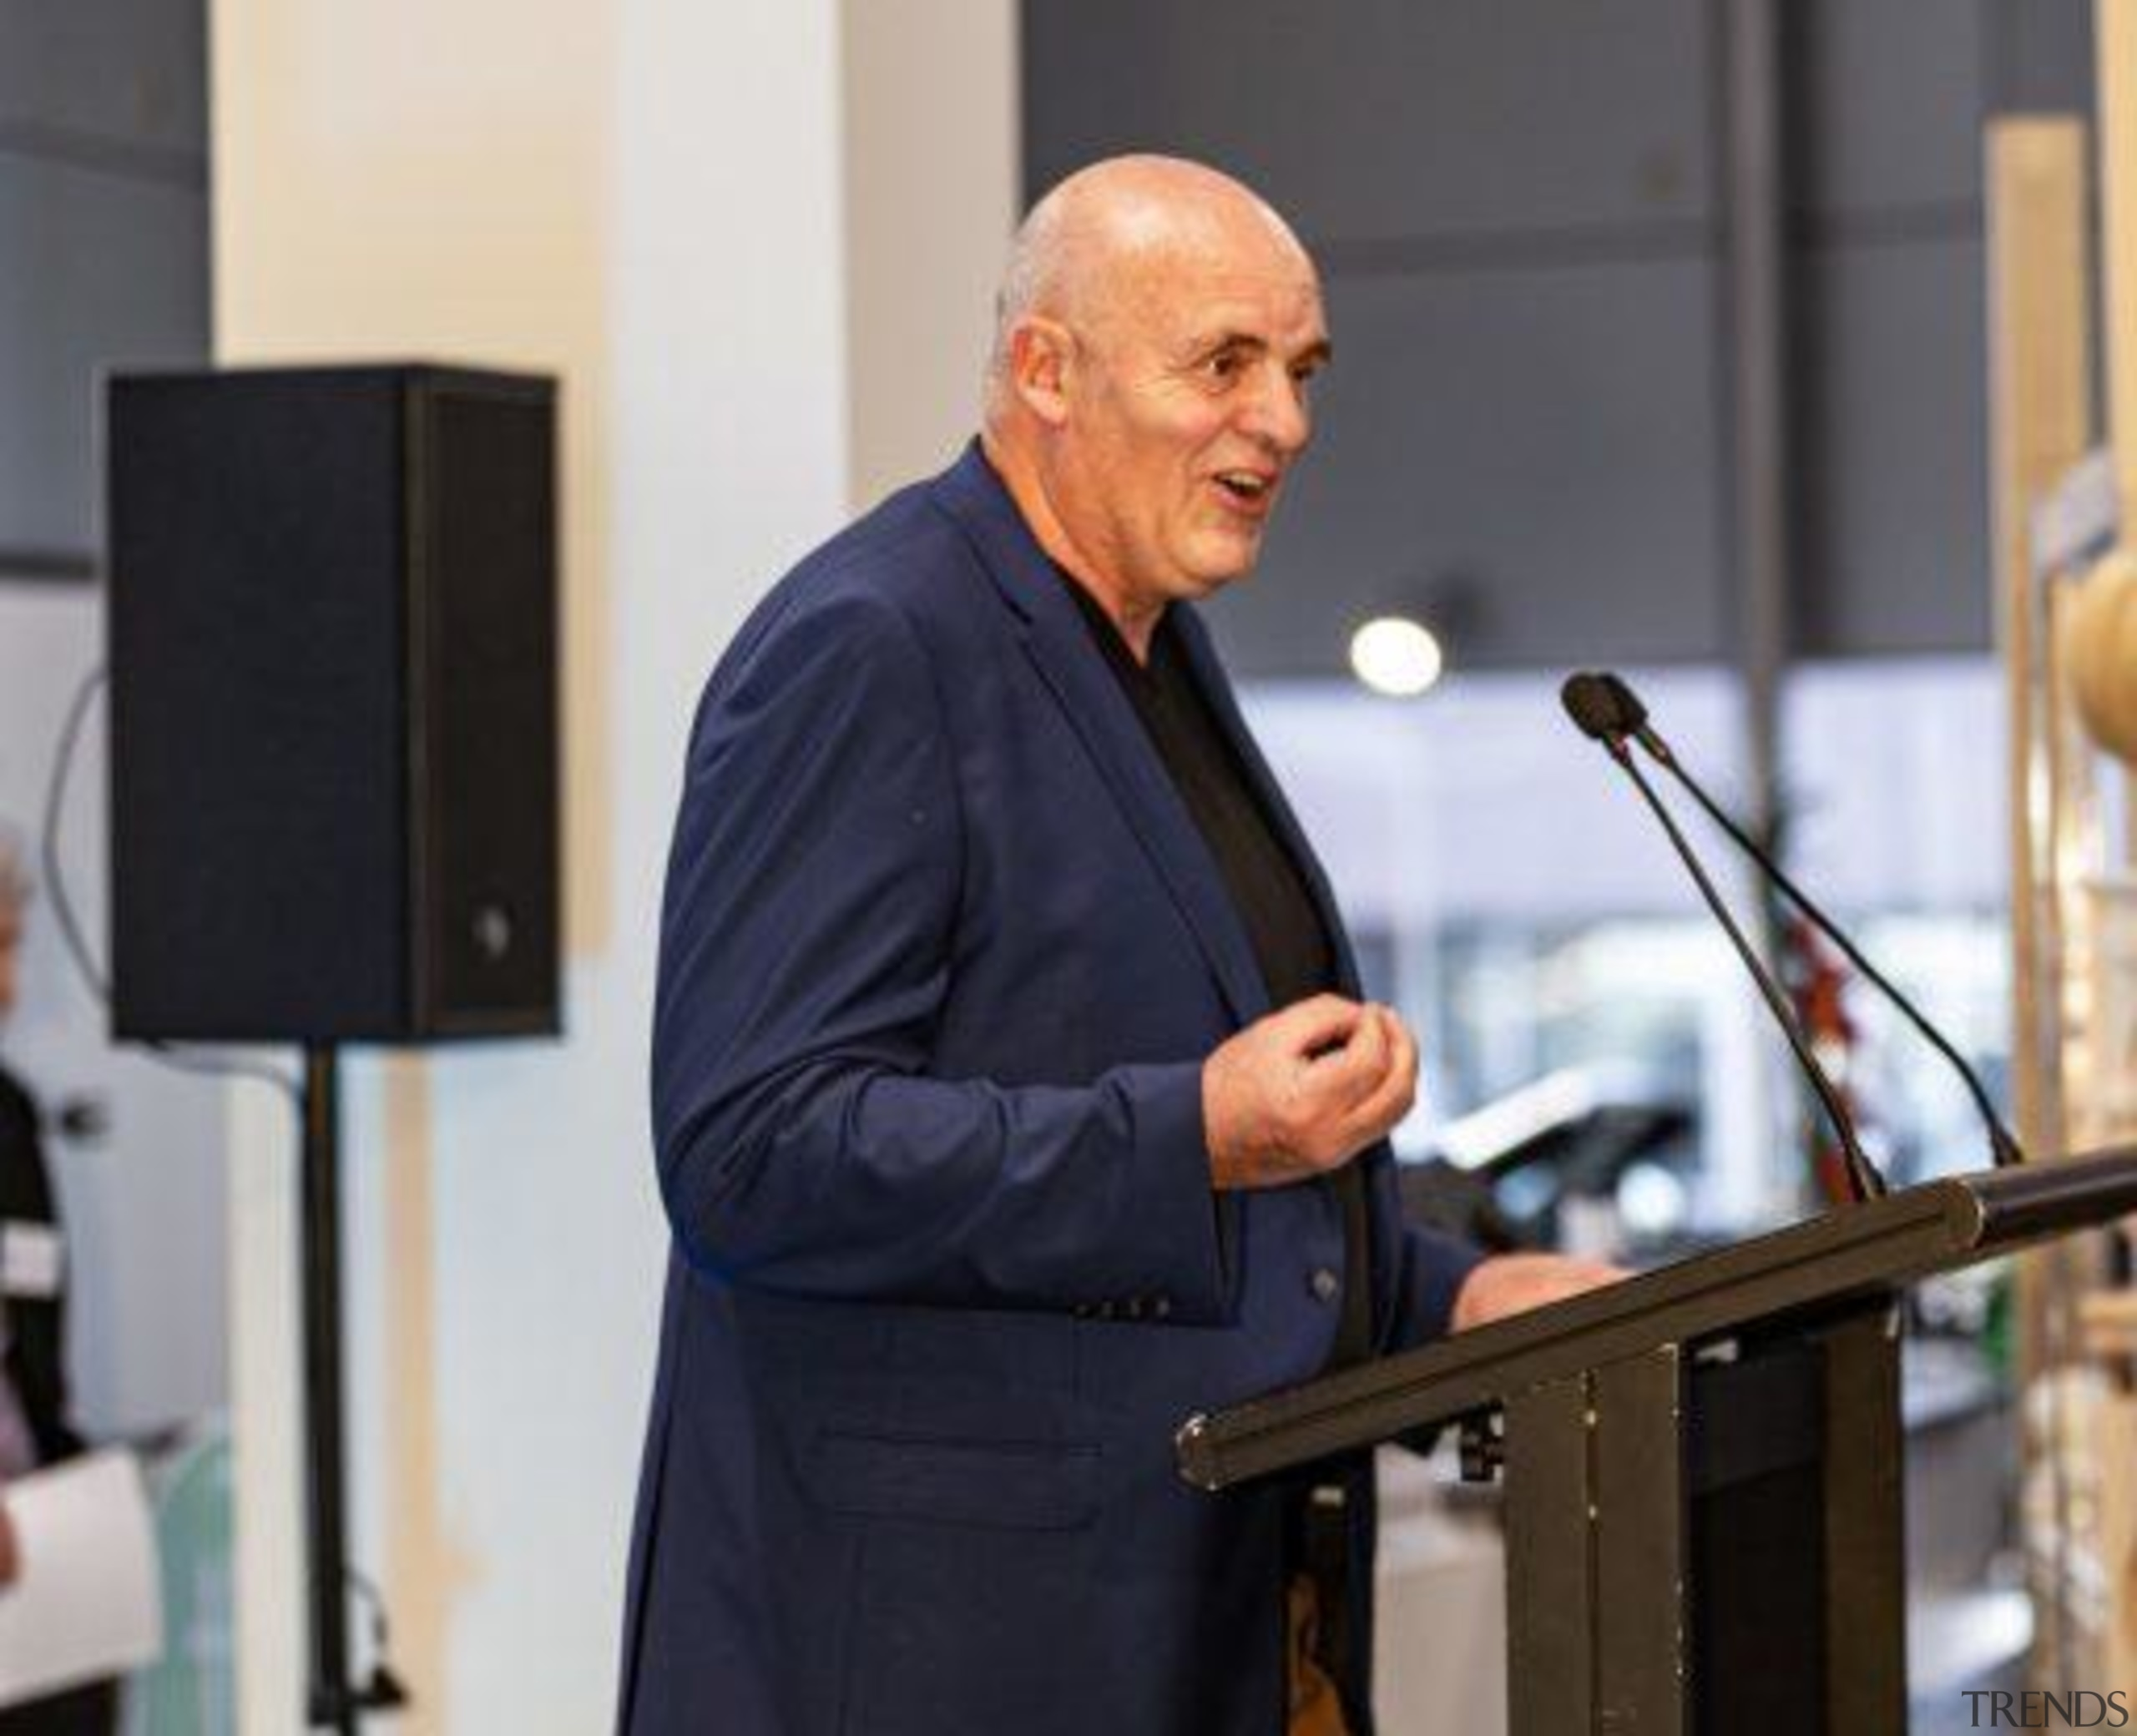 2019 TIDA New Zealand Homes presentation evening event, orator, public speaking, speech, gray